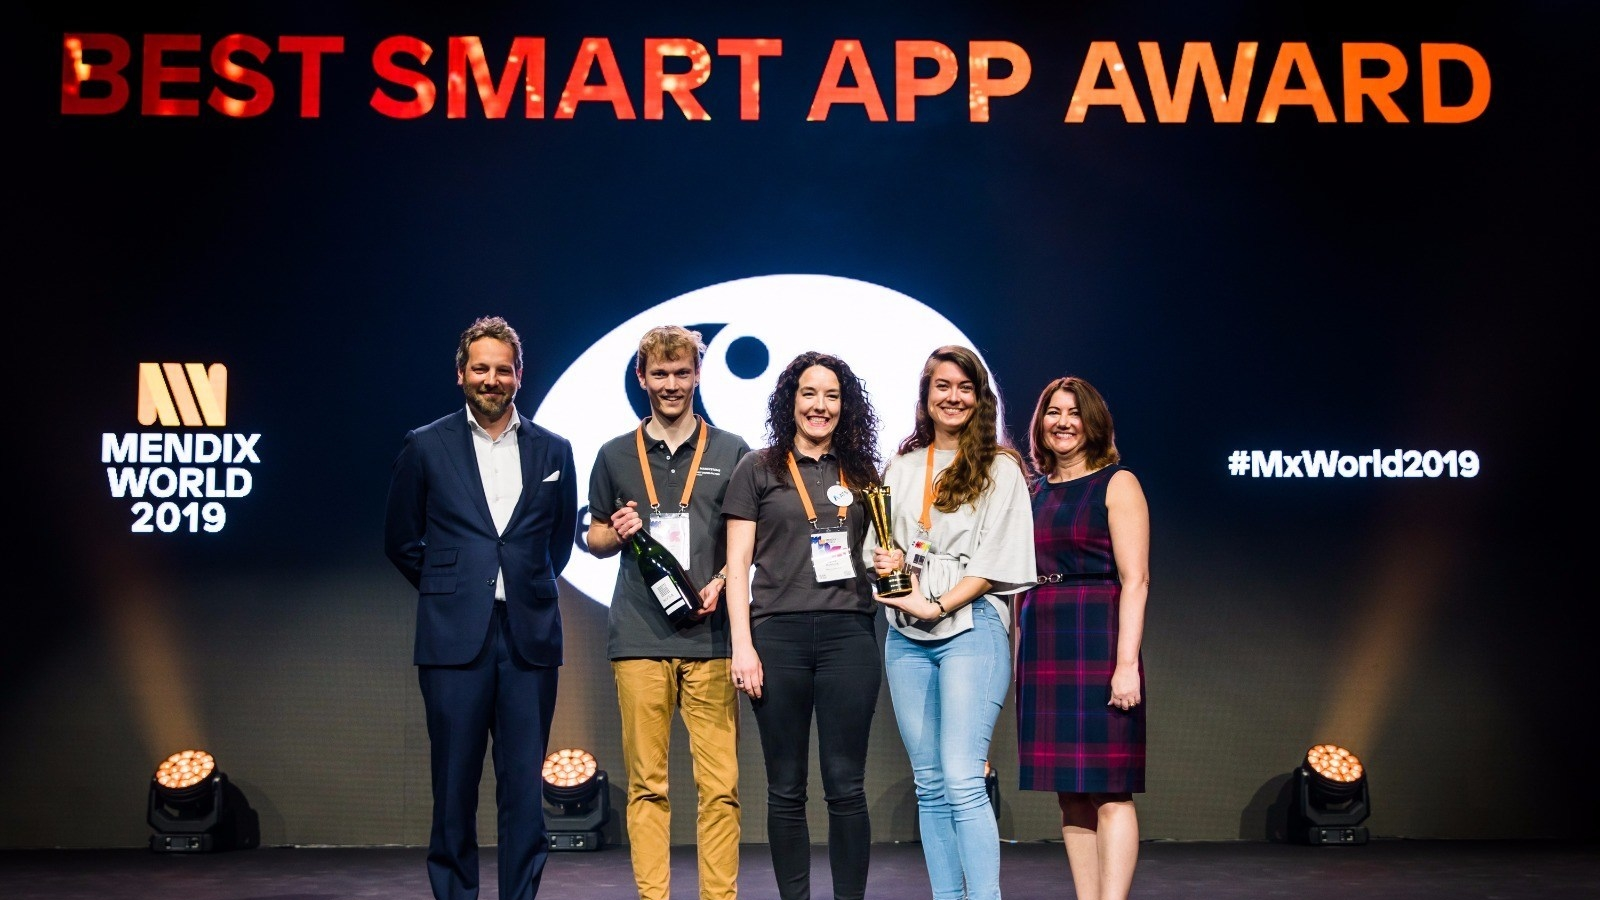 press-release-best-smart-app-award